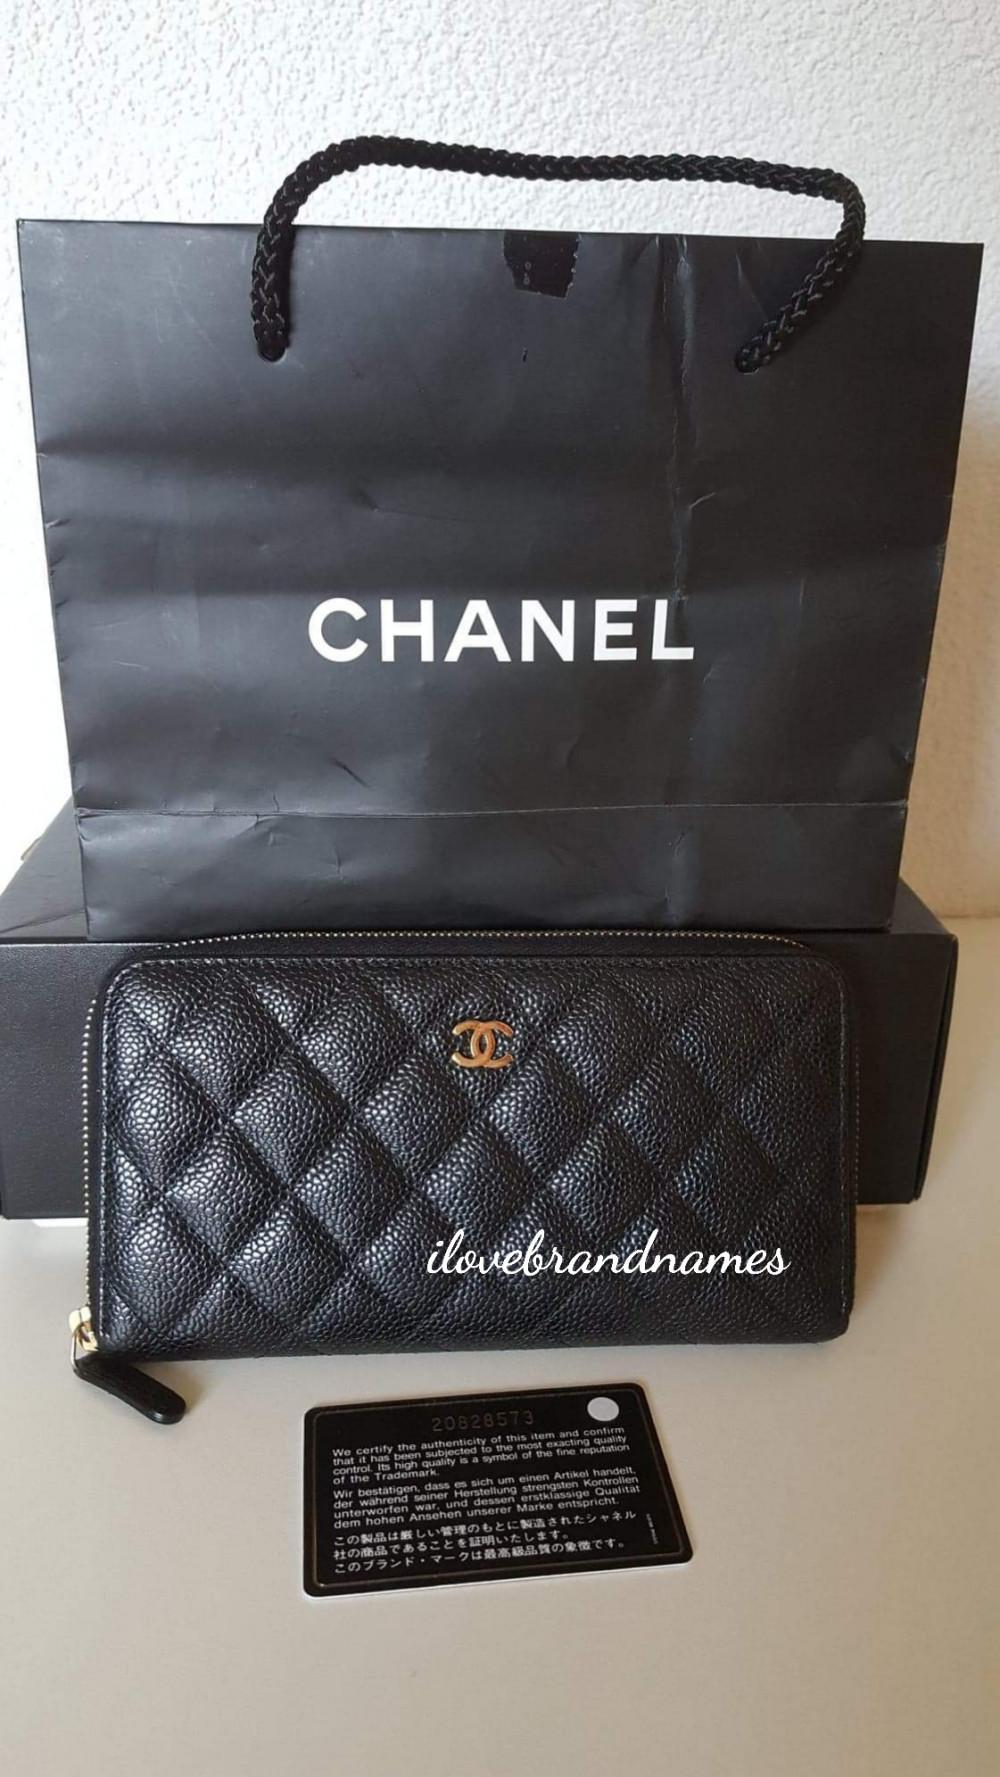 400ab0b9eaec Chanel Black Caviar Leather Zippy Wallet | I Love Brand Names